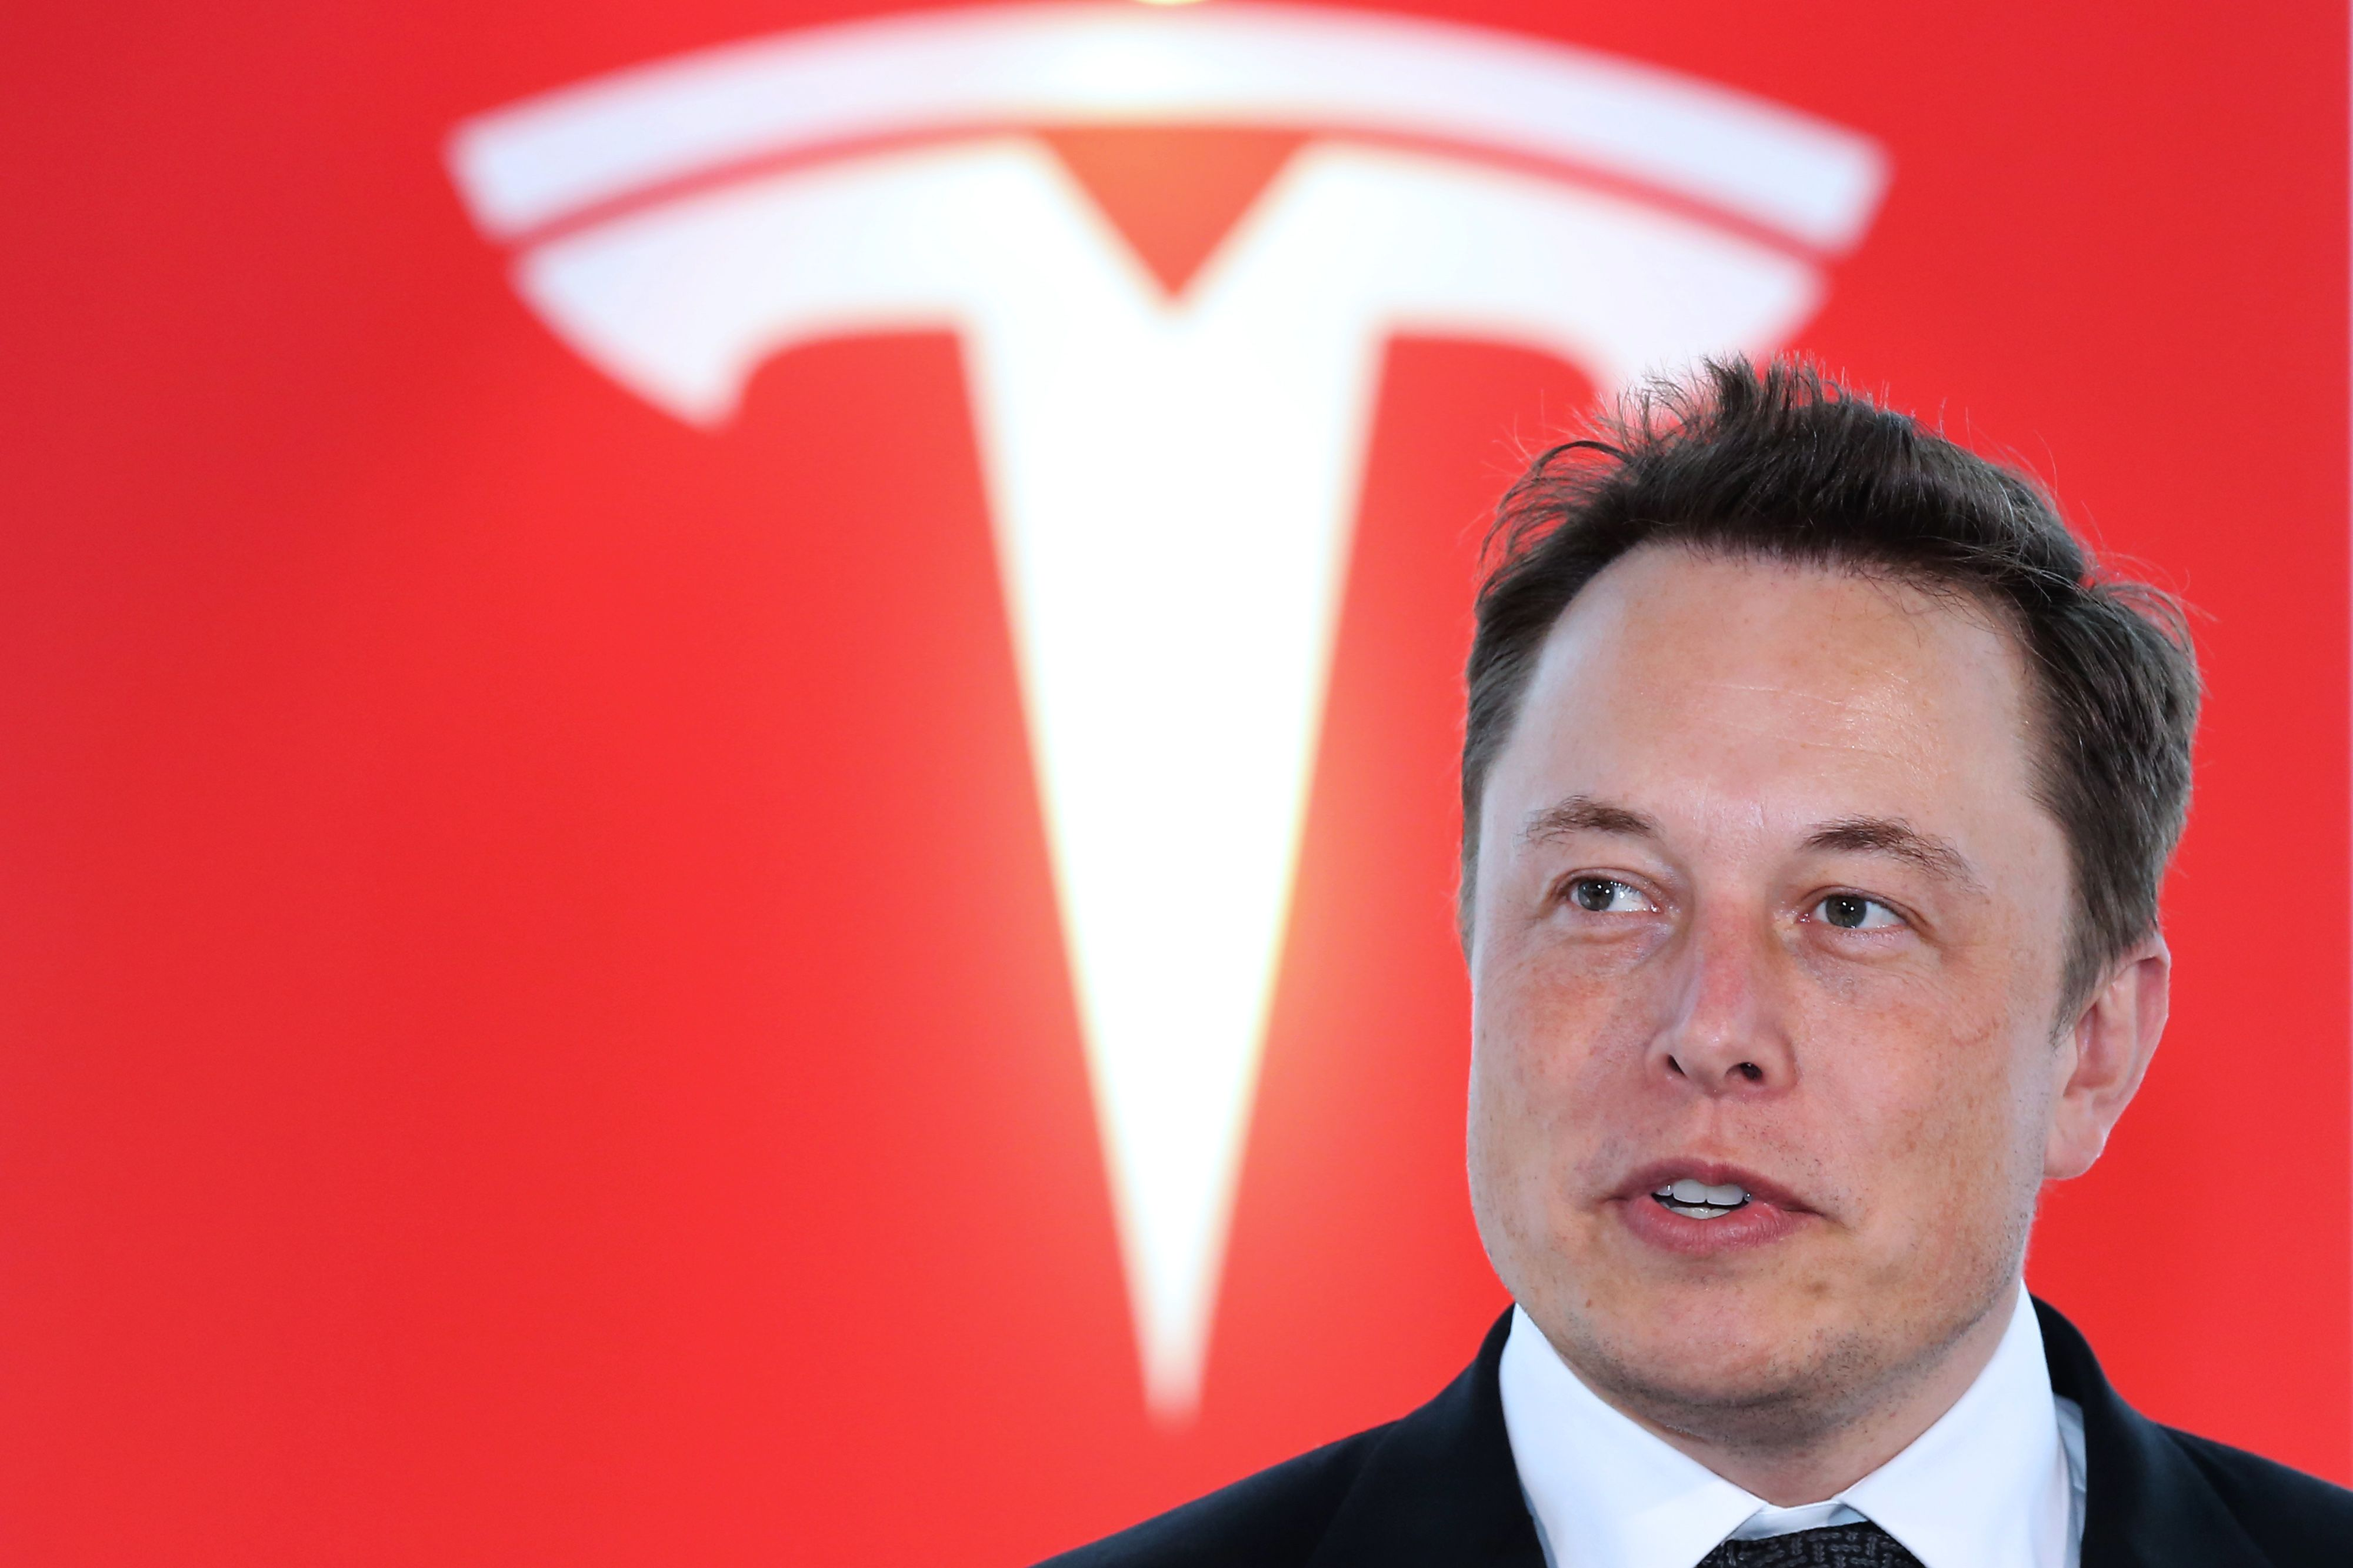 Elon Musk blames Brexit for decision to build new Tesla factory in Germany instead of UK